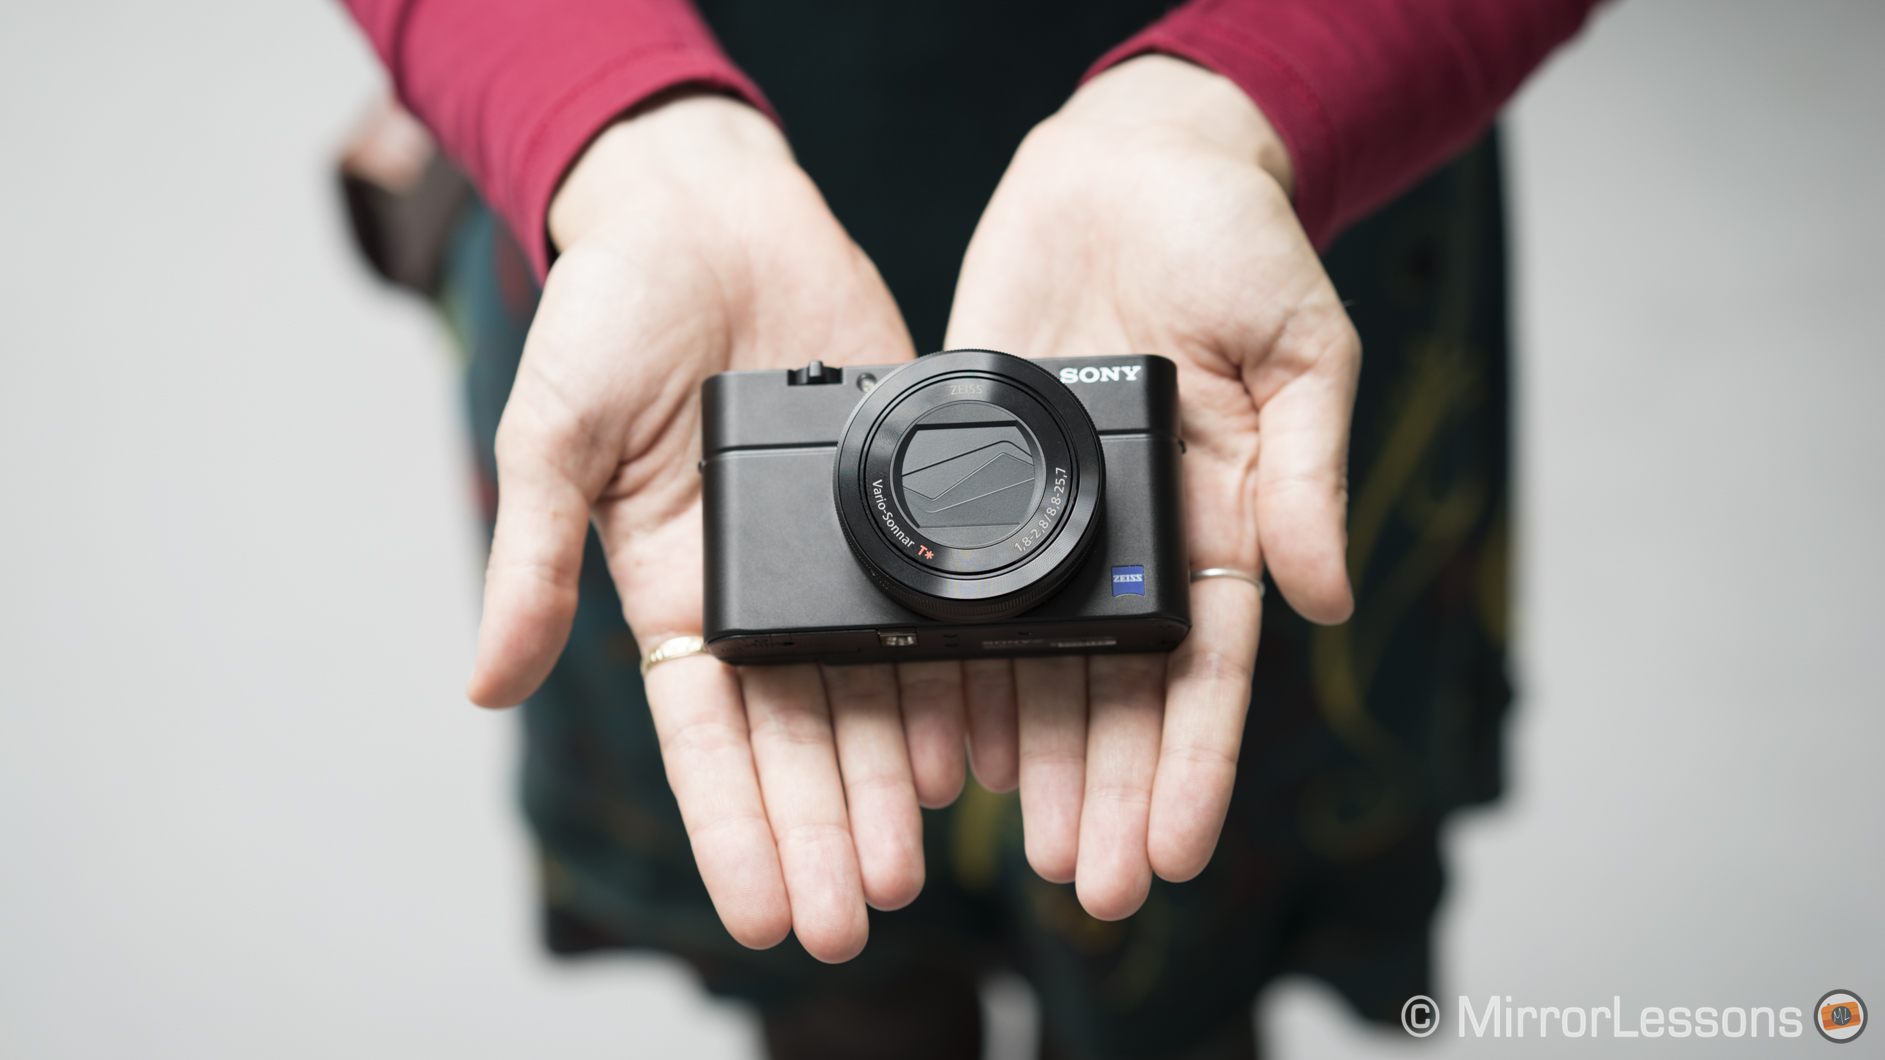 rx100 mark iii review